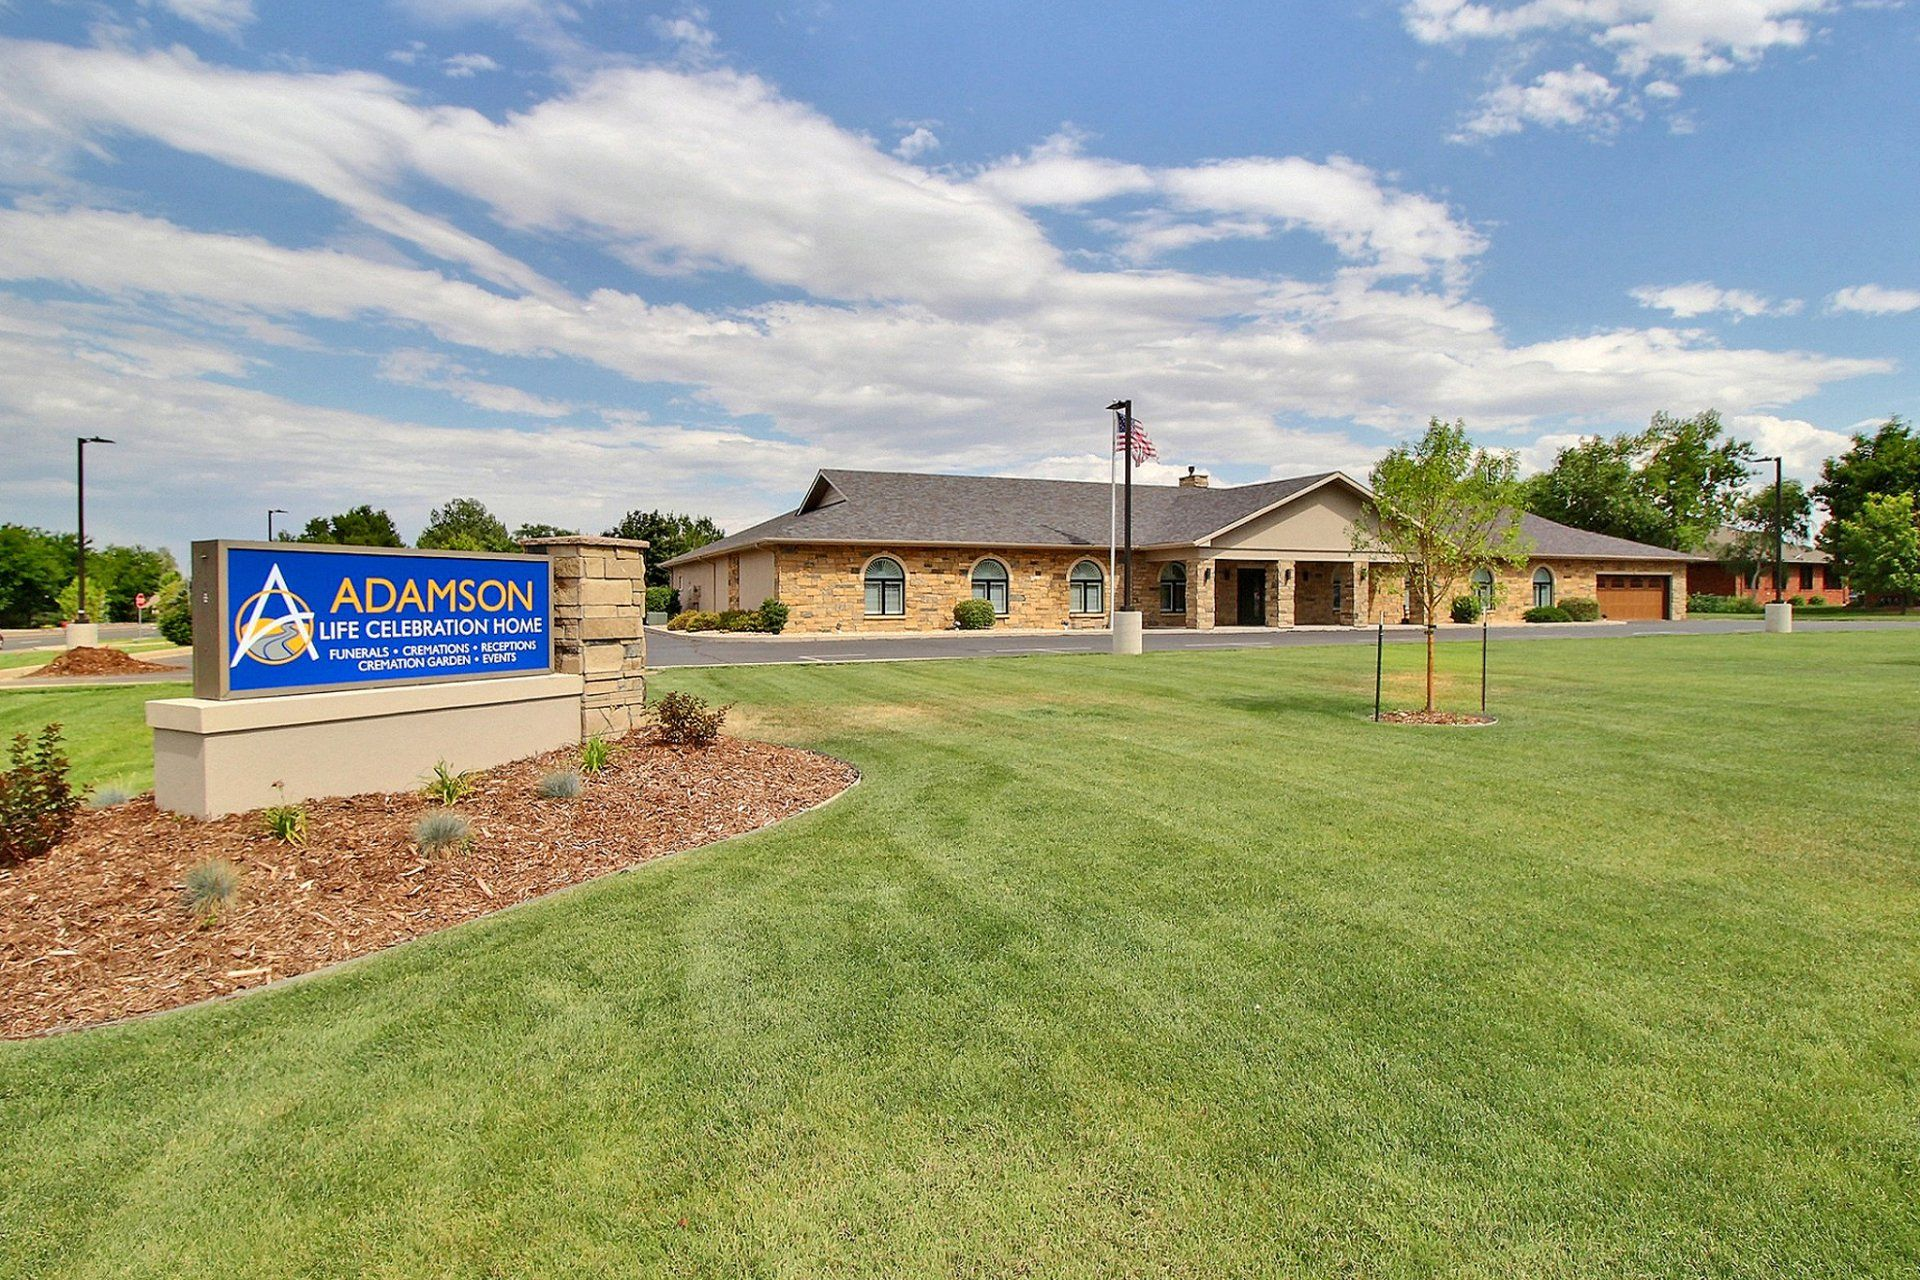 Adamson Life Cerebration Homes Greeley Co